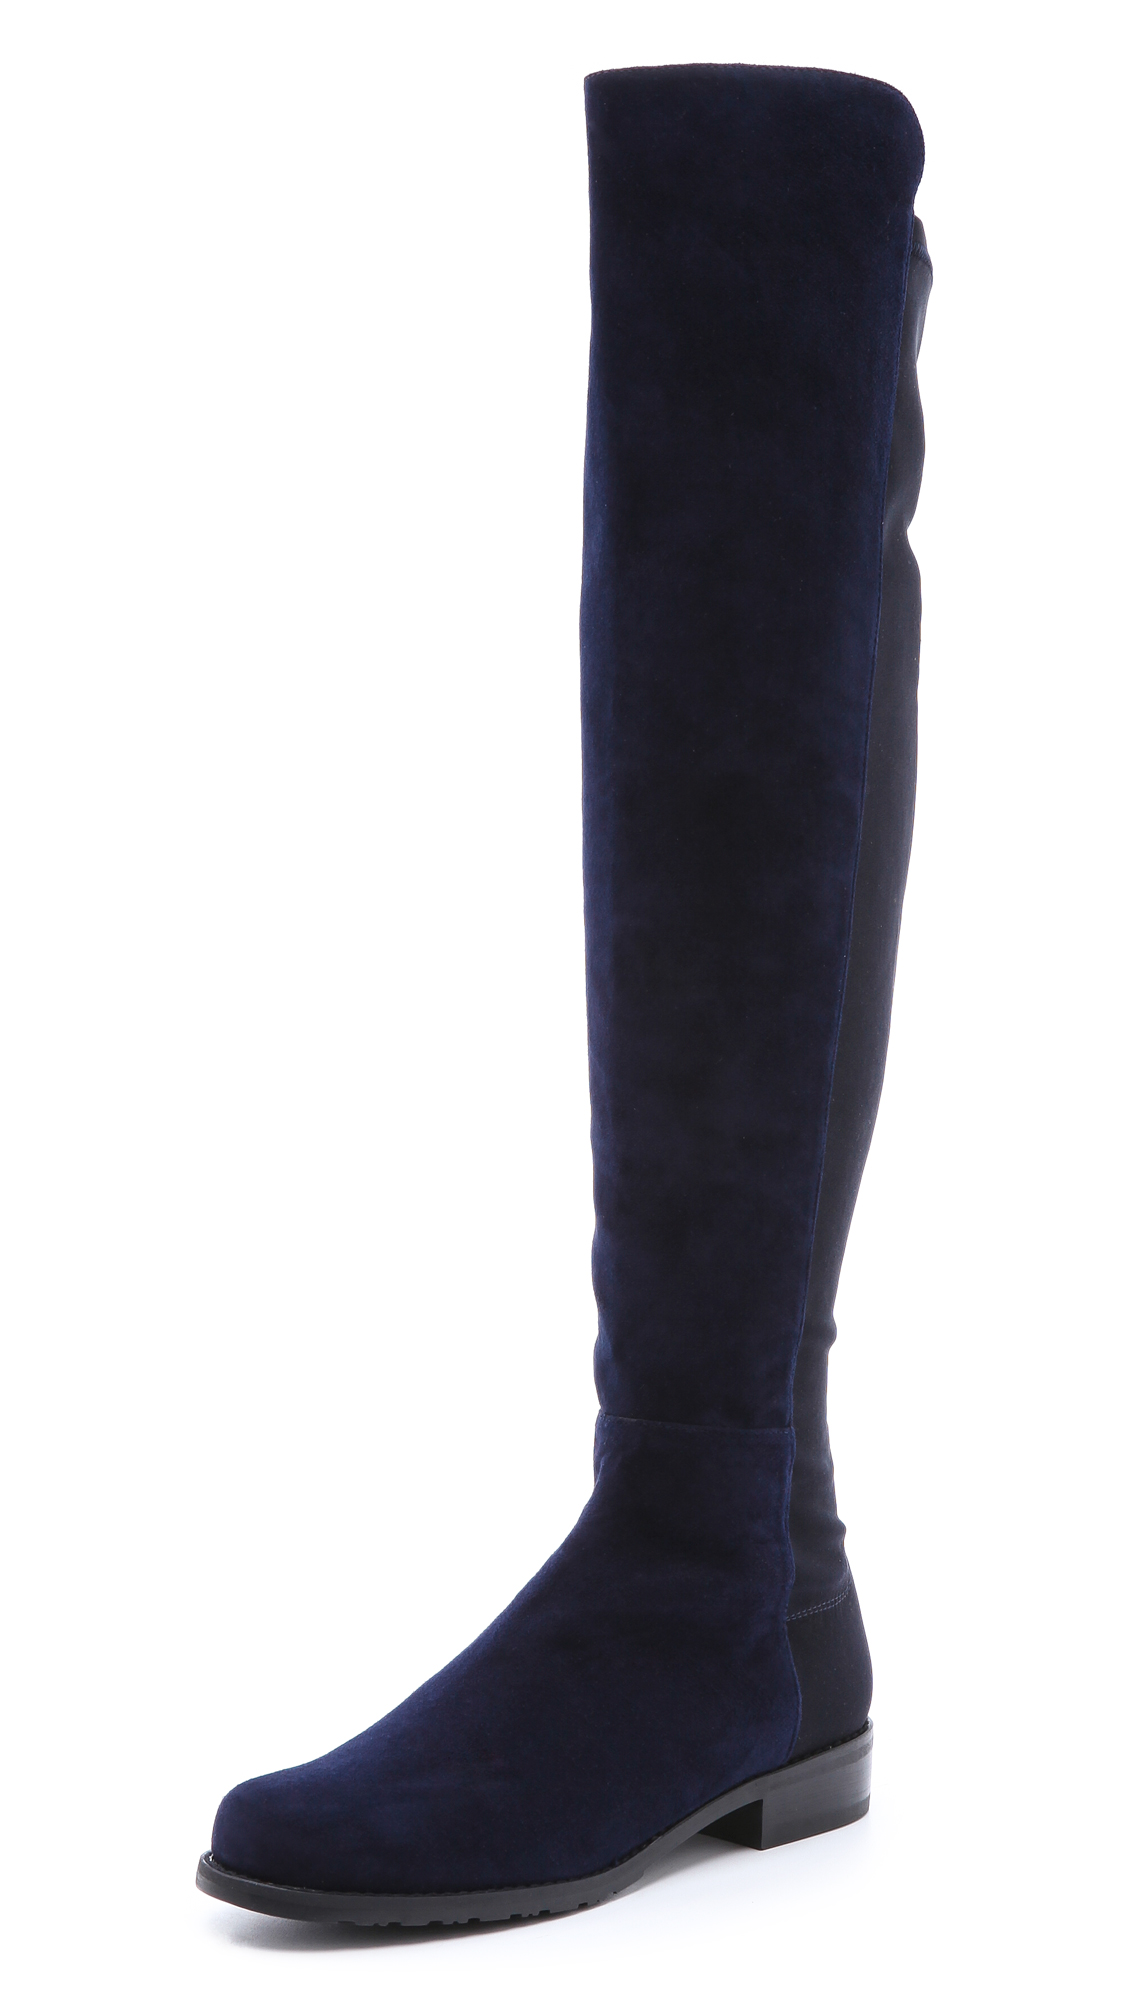 Overstock uses cookies to ensure you get the best experience on our site. Journee Collection Women's Maya Faux Suede Regular and Wide Calf Over-the-Knee Boots. 28 Reviews. SALE ends in 1 day. Quick View. Not Rated Womens Beval Fabric Closed Toe Over Knee Riding Boots.